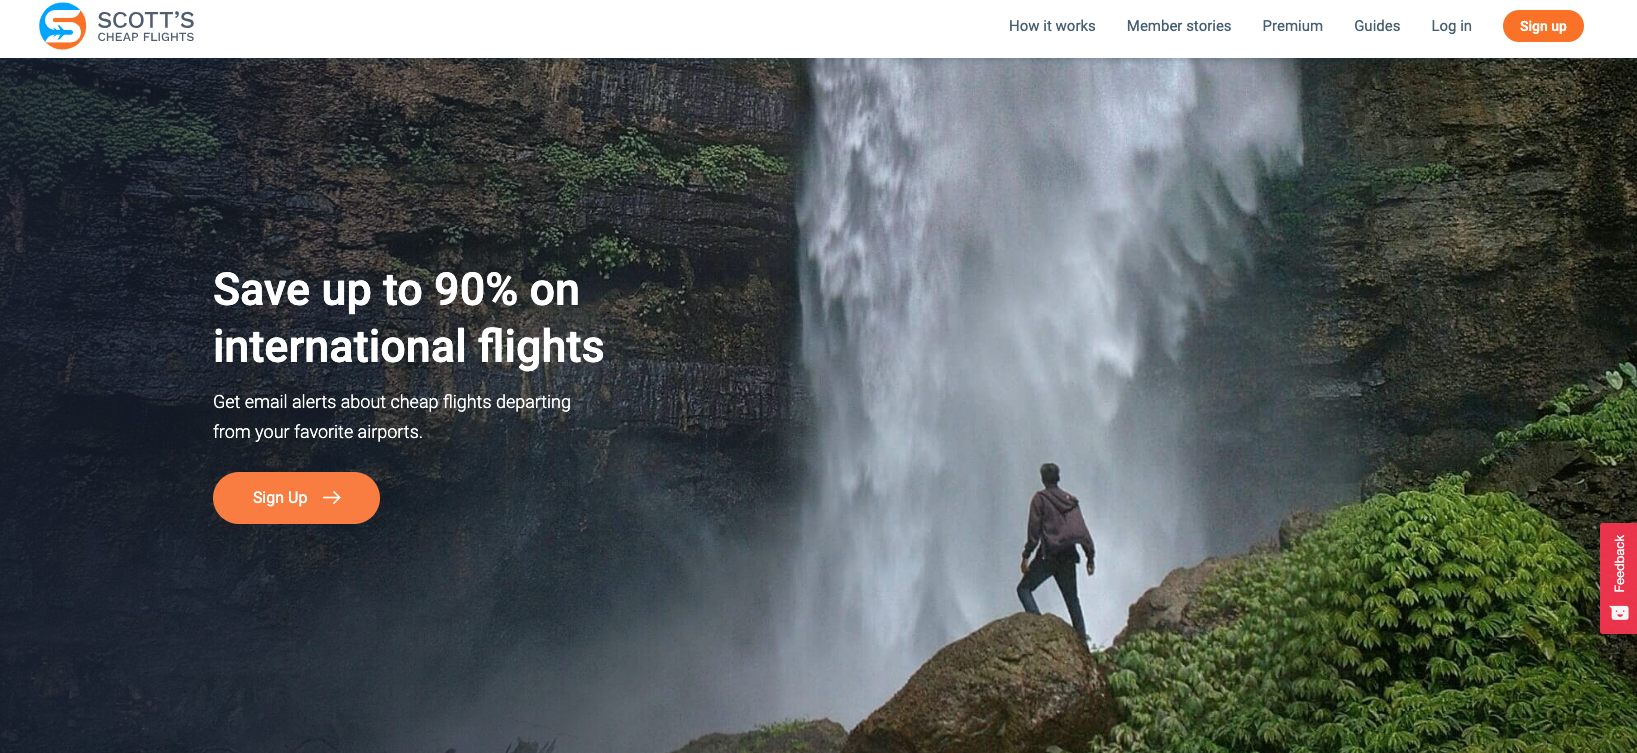 Scott's Cheap Flights homepage.